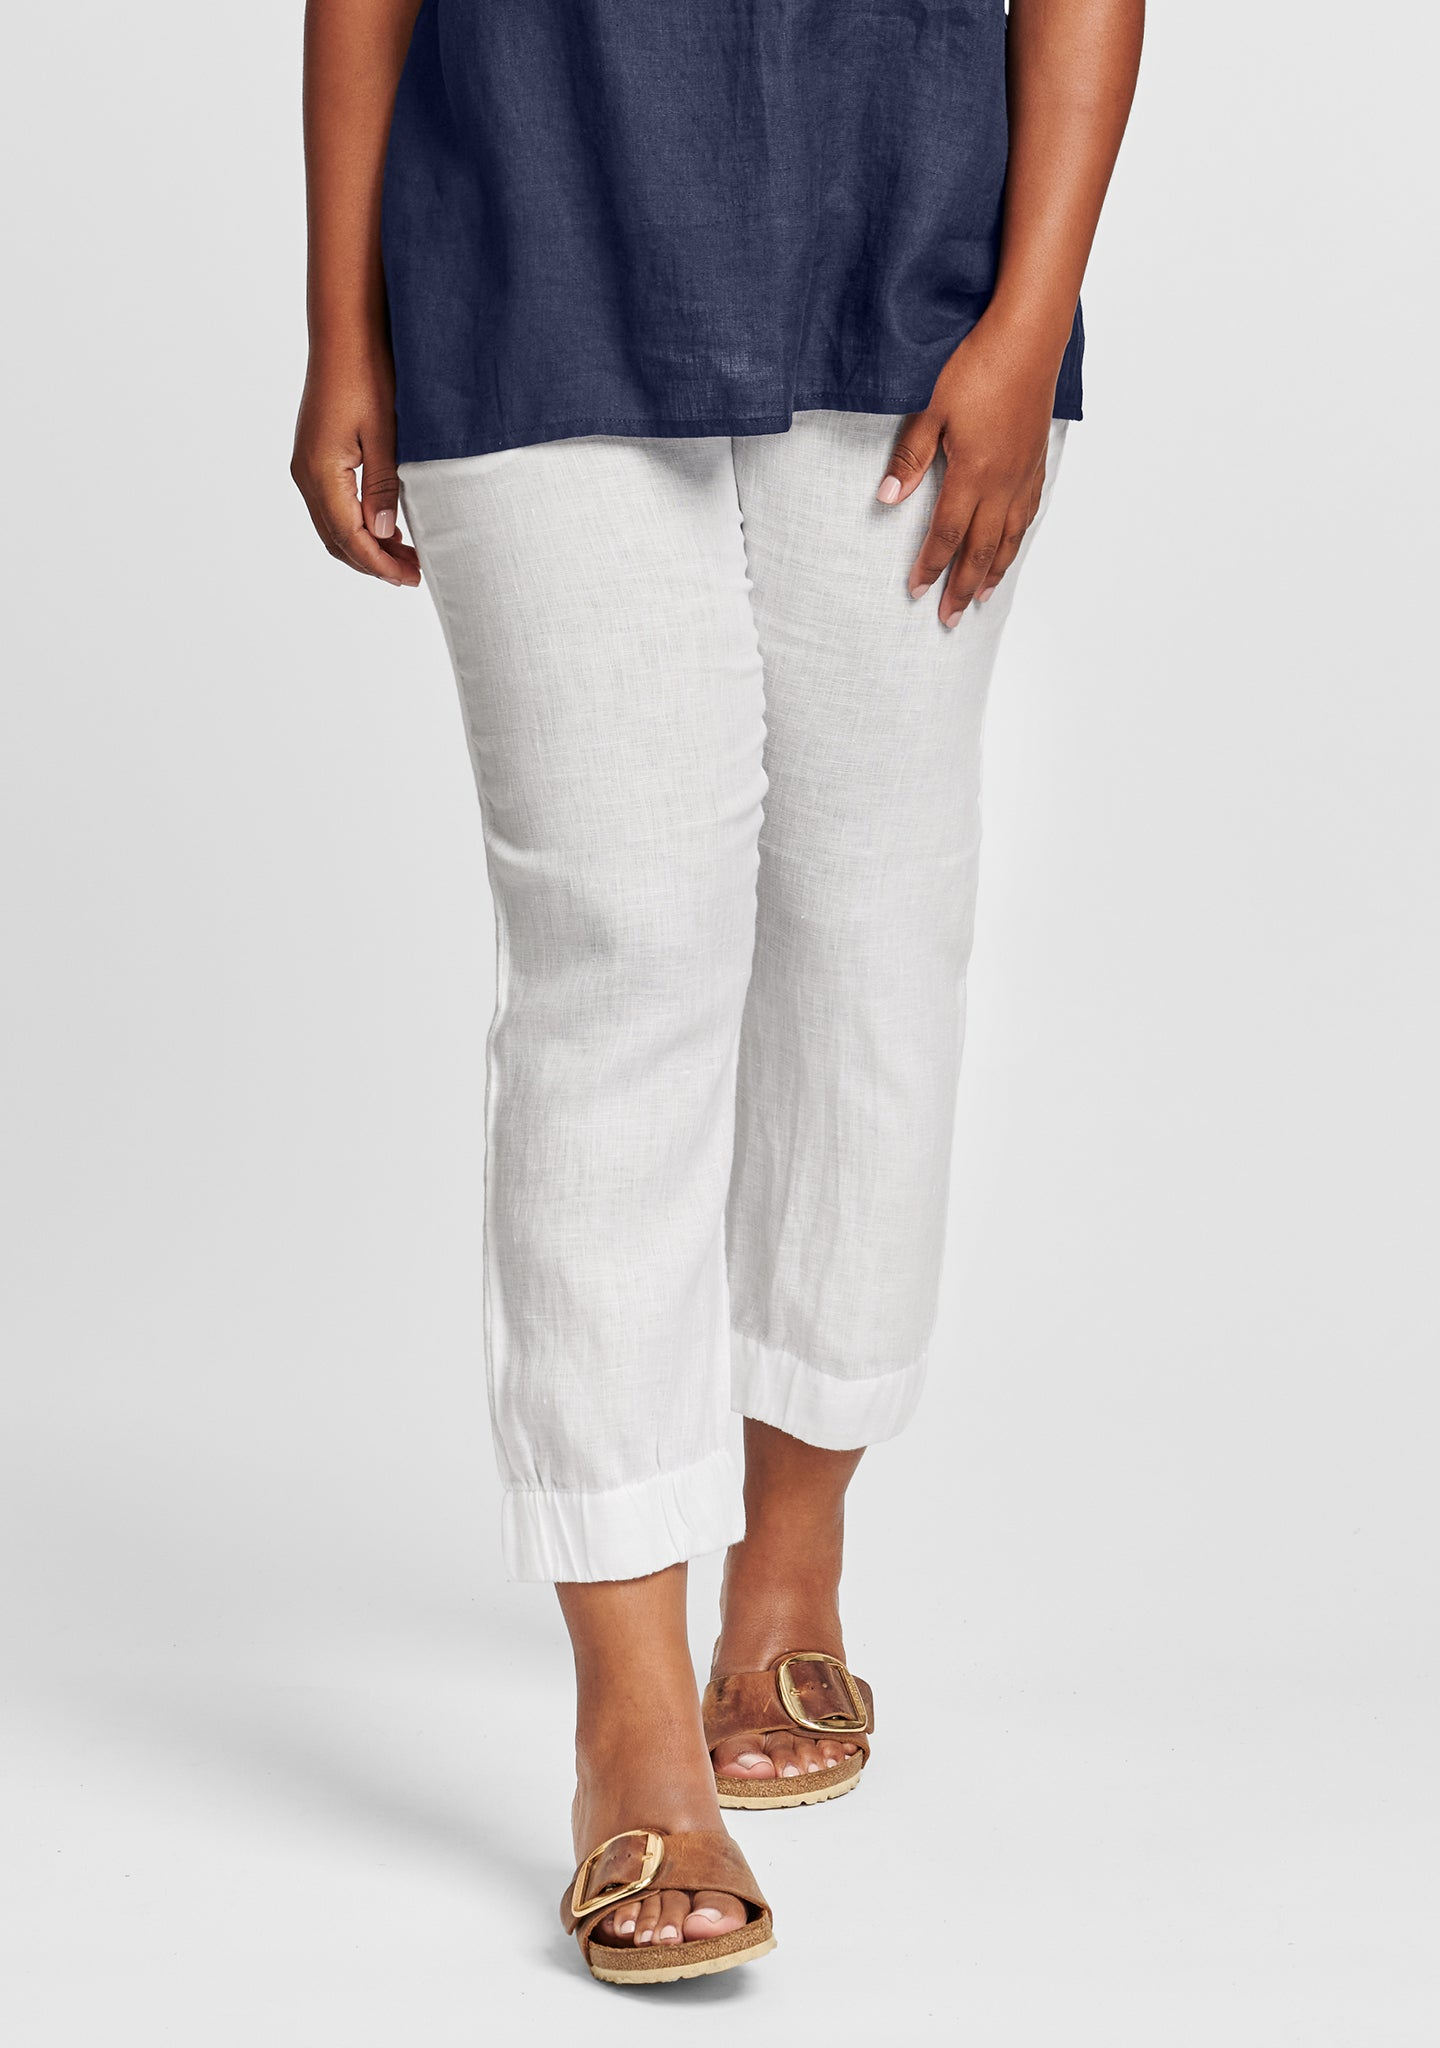 joggers linen pants with elastic waist white